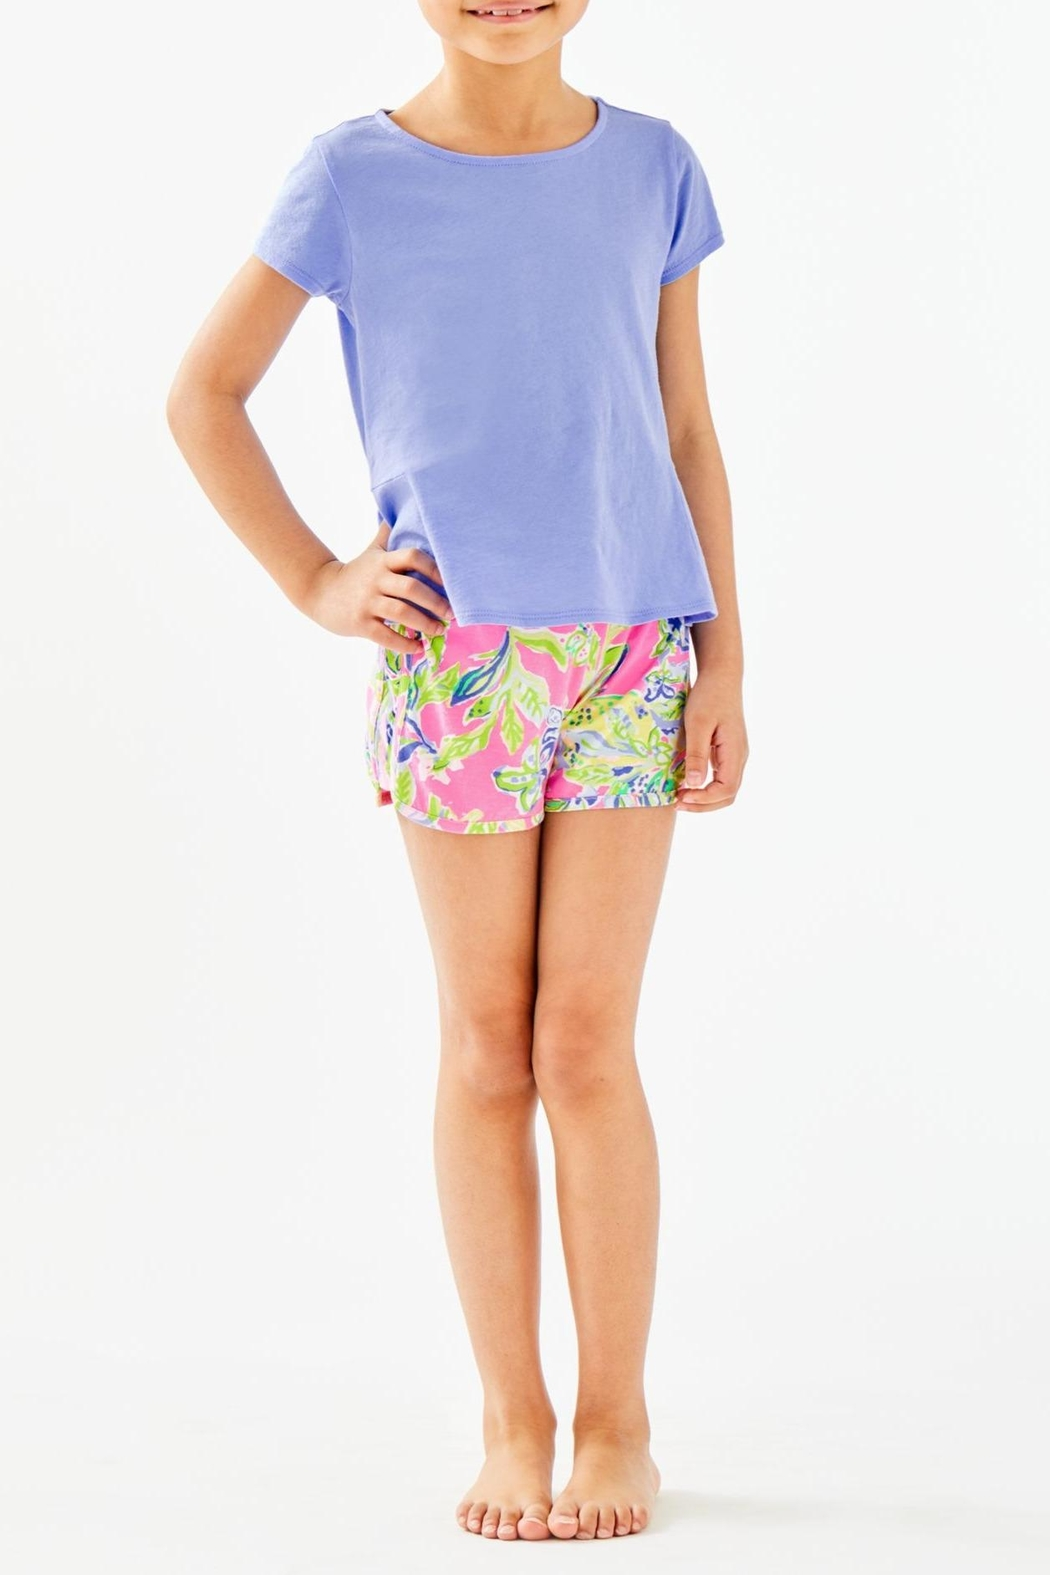 Lilly Pulitzer Girls Sondra Peplum-Top - Main Image